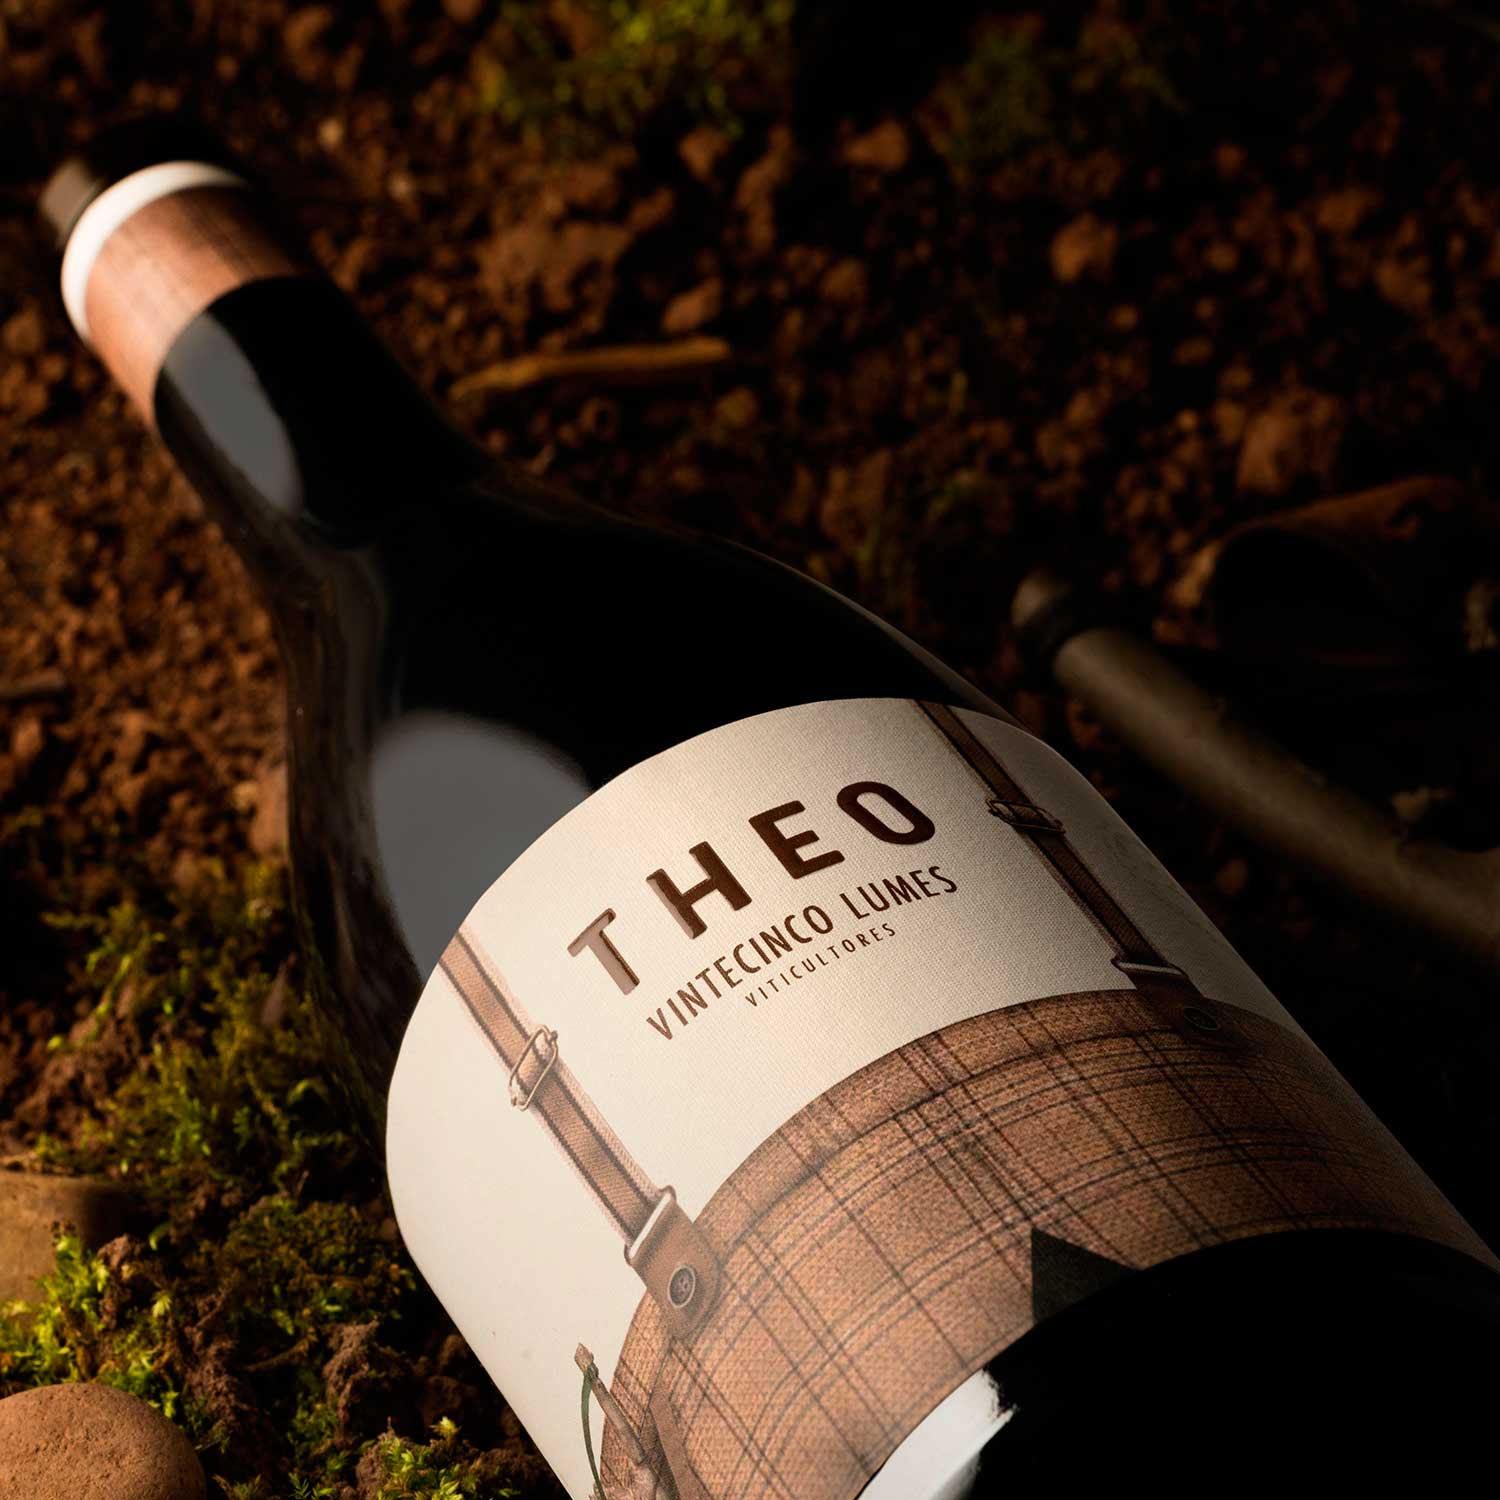 Enpedra Wine Design Studio Creates Wine Label Design for Theo